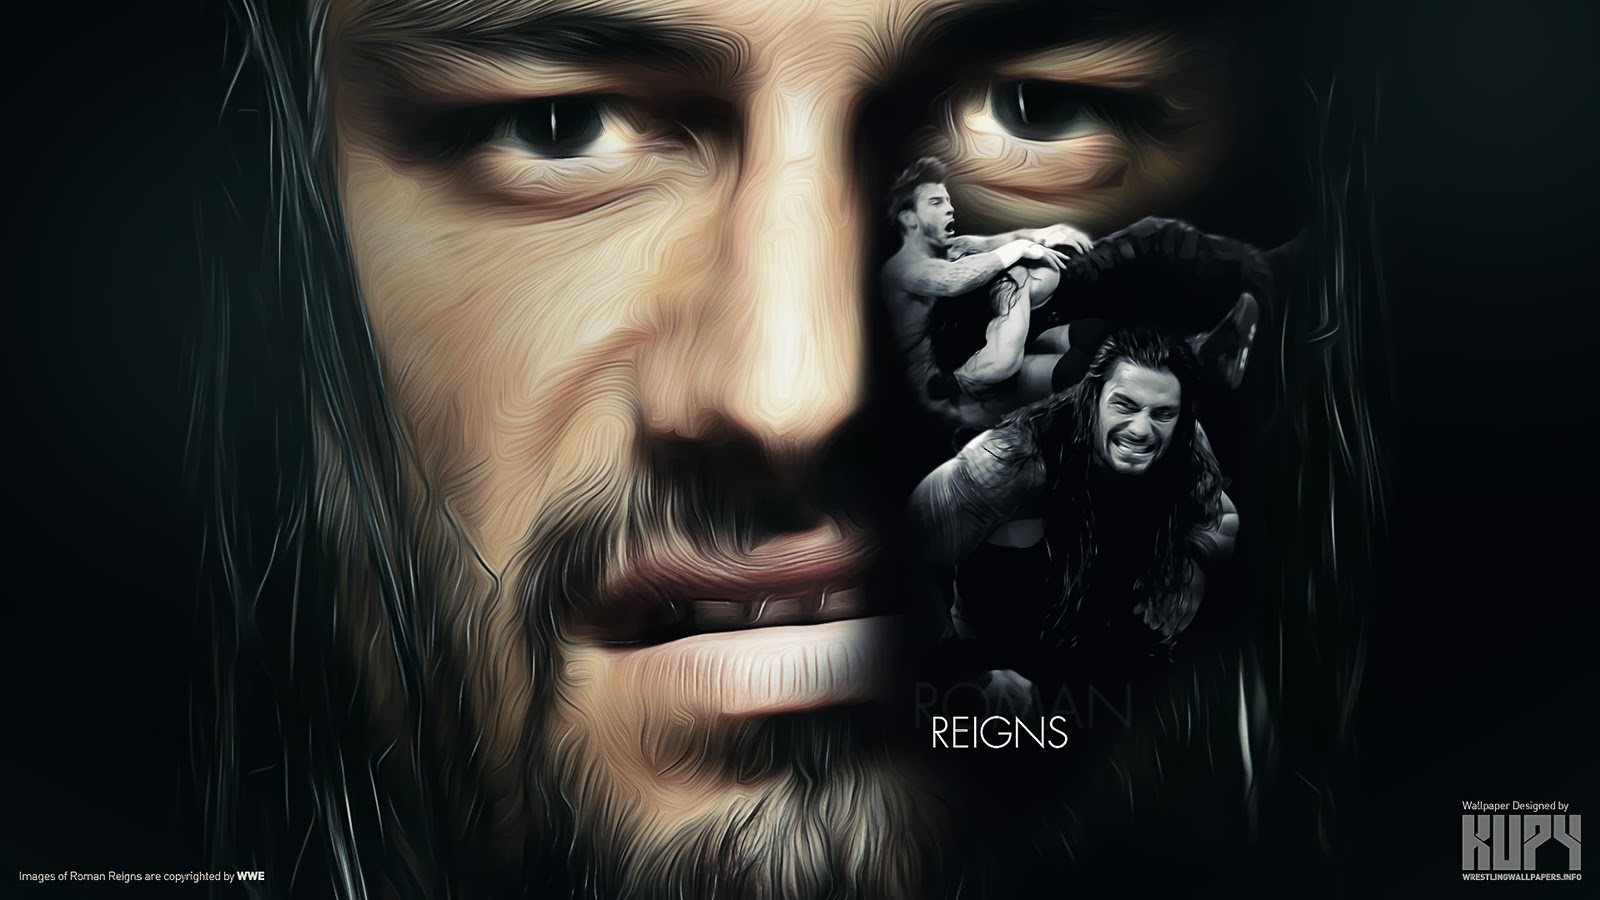 Roman Reigns 2014 Wallpapers - Wallpapers